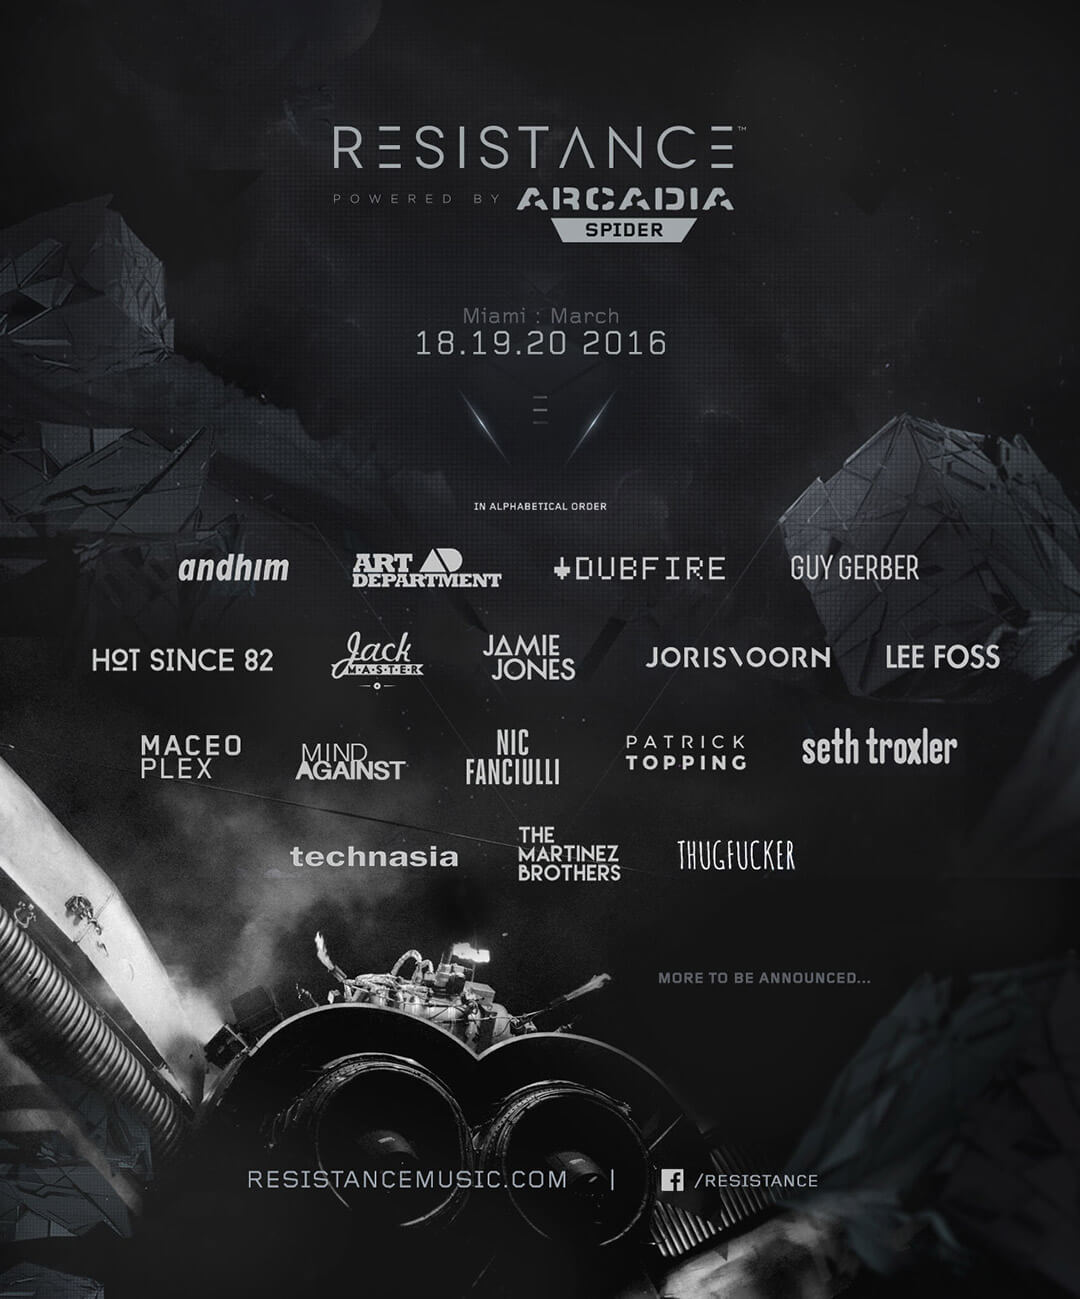 Resistance Miami Phase One Lineup Announced